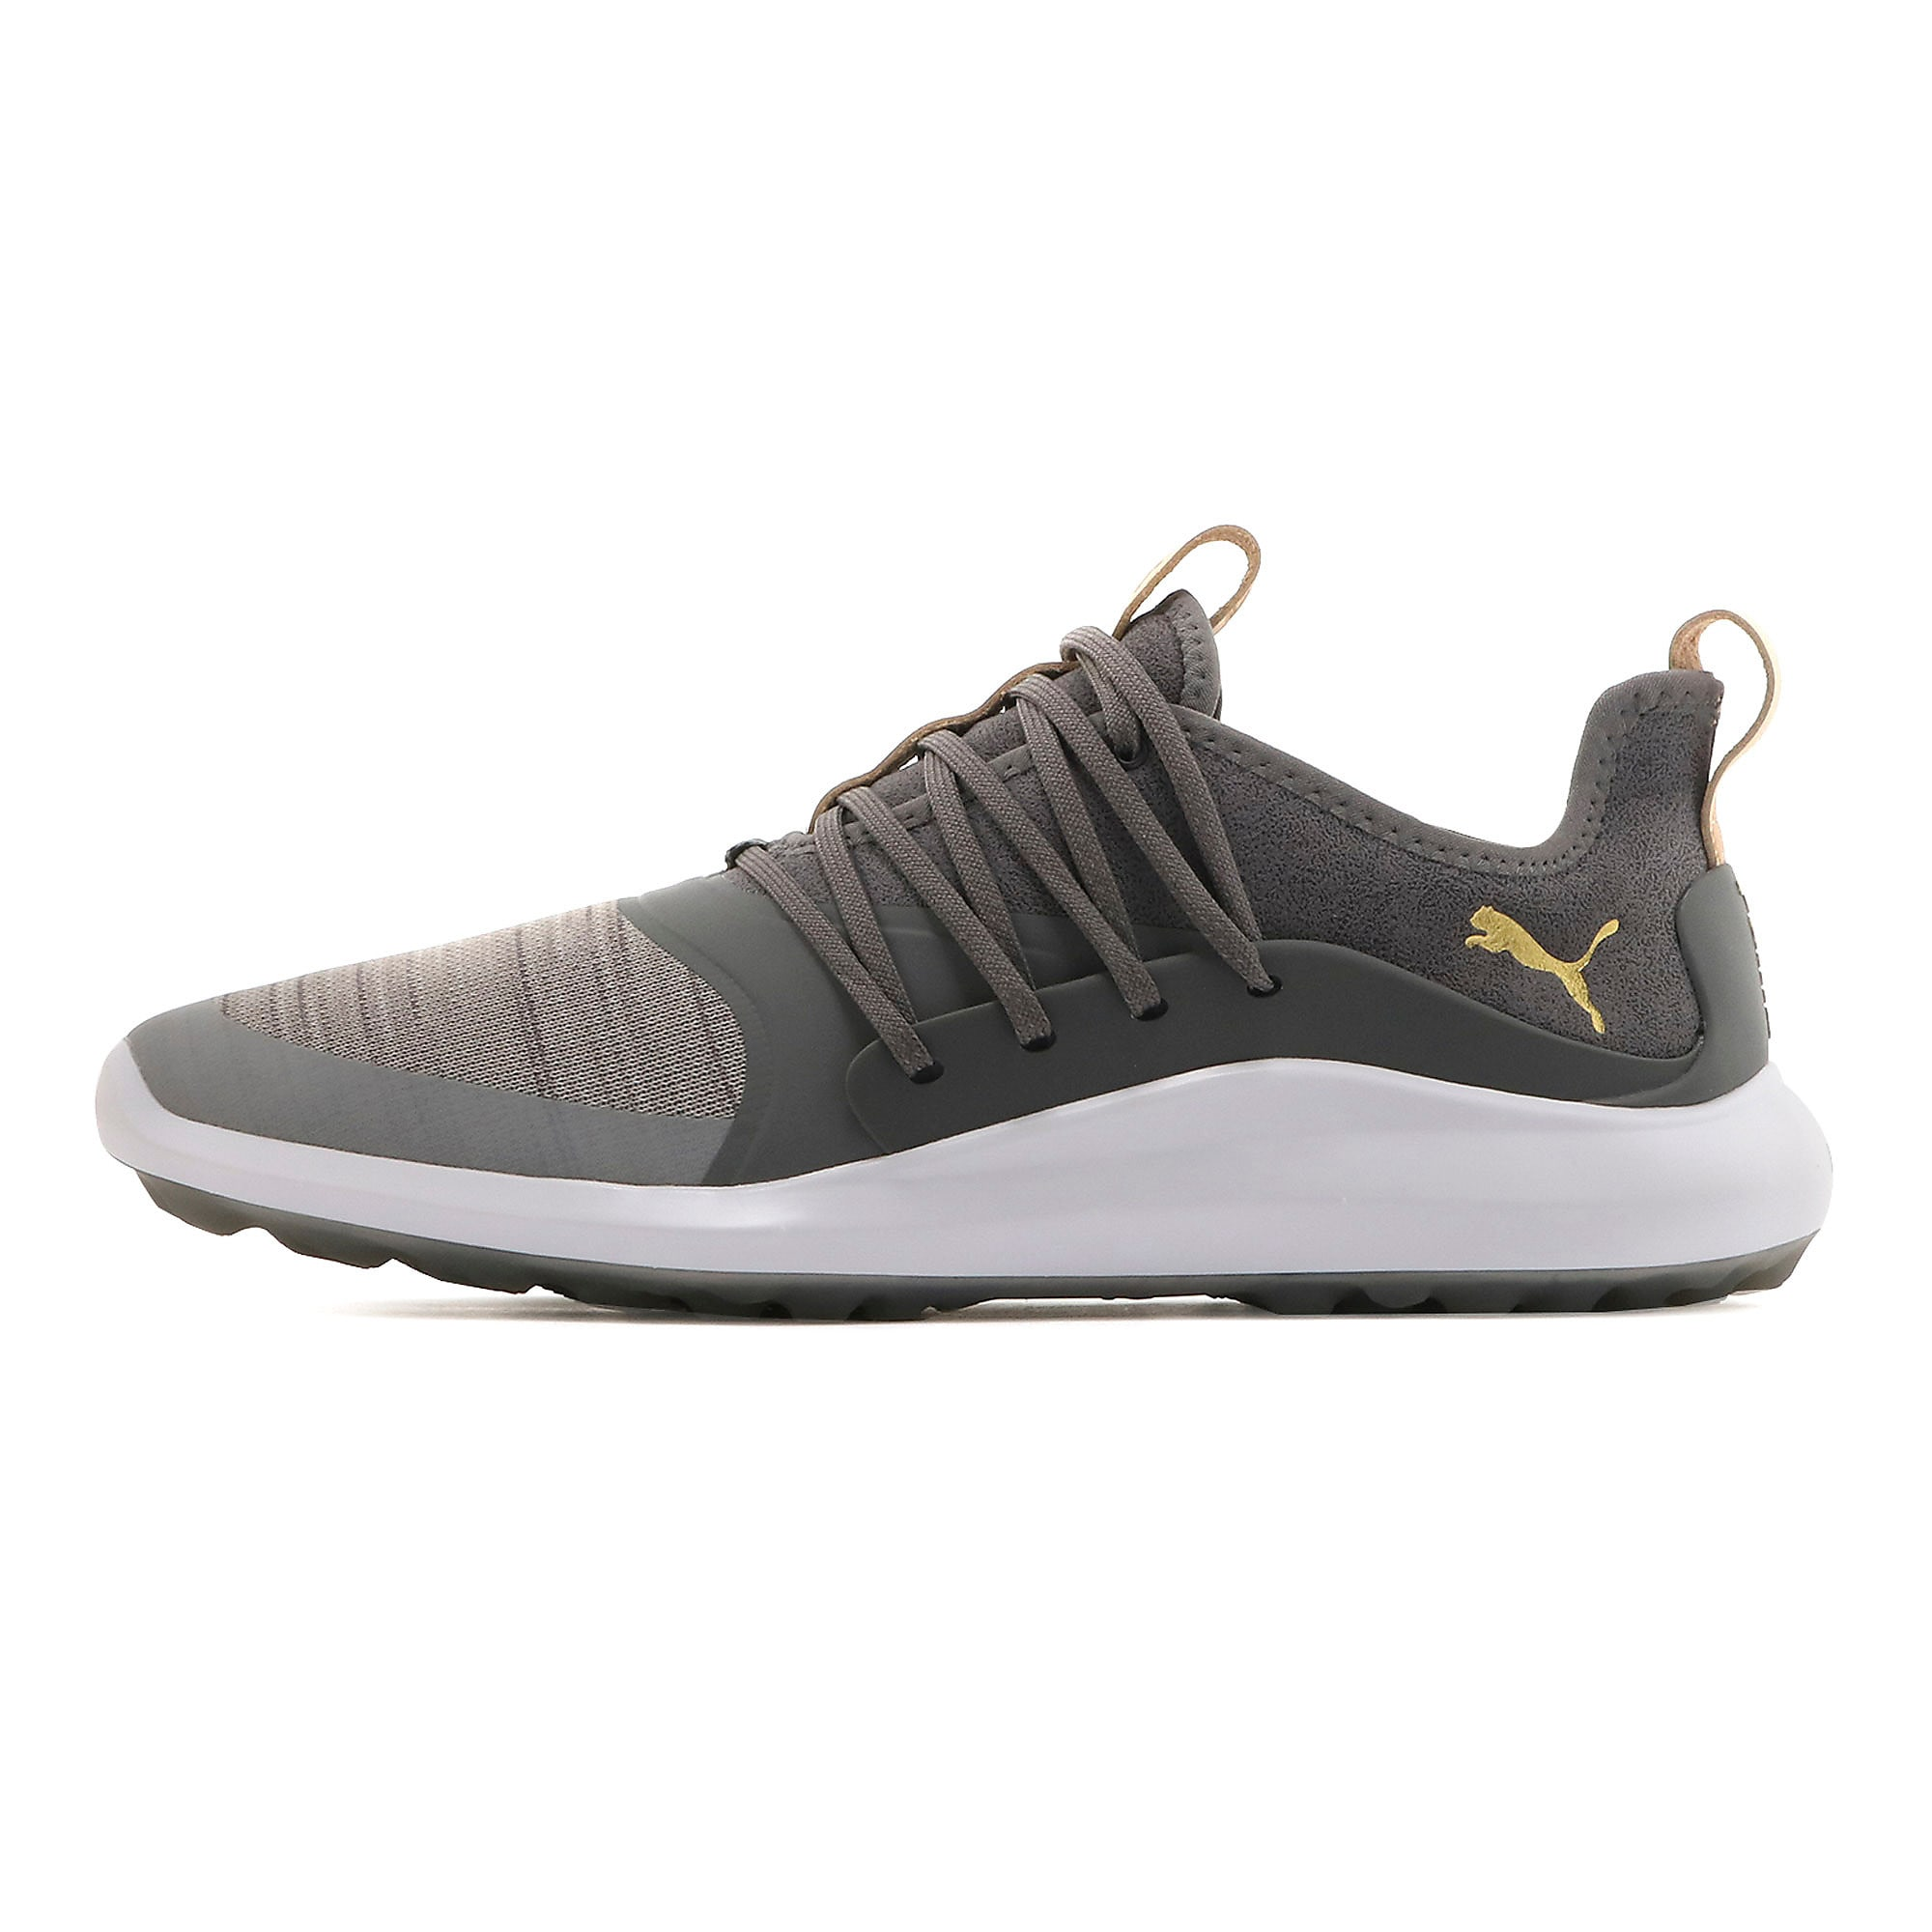 Thumbnail 1 of Chaussure de golf IGNITE NXT SOLELACE pour homme, Gray Violet-Gold-QUIET SHADE, medium